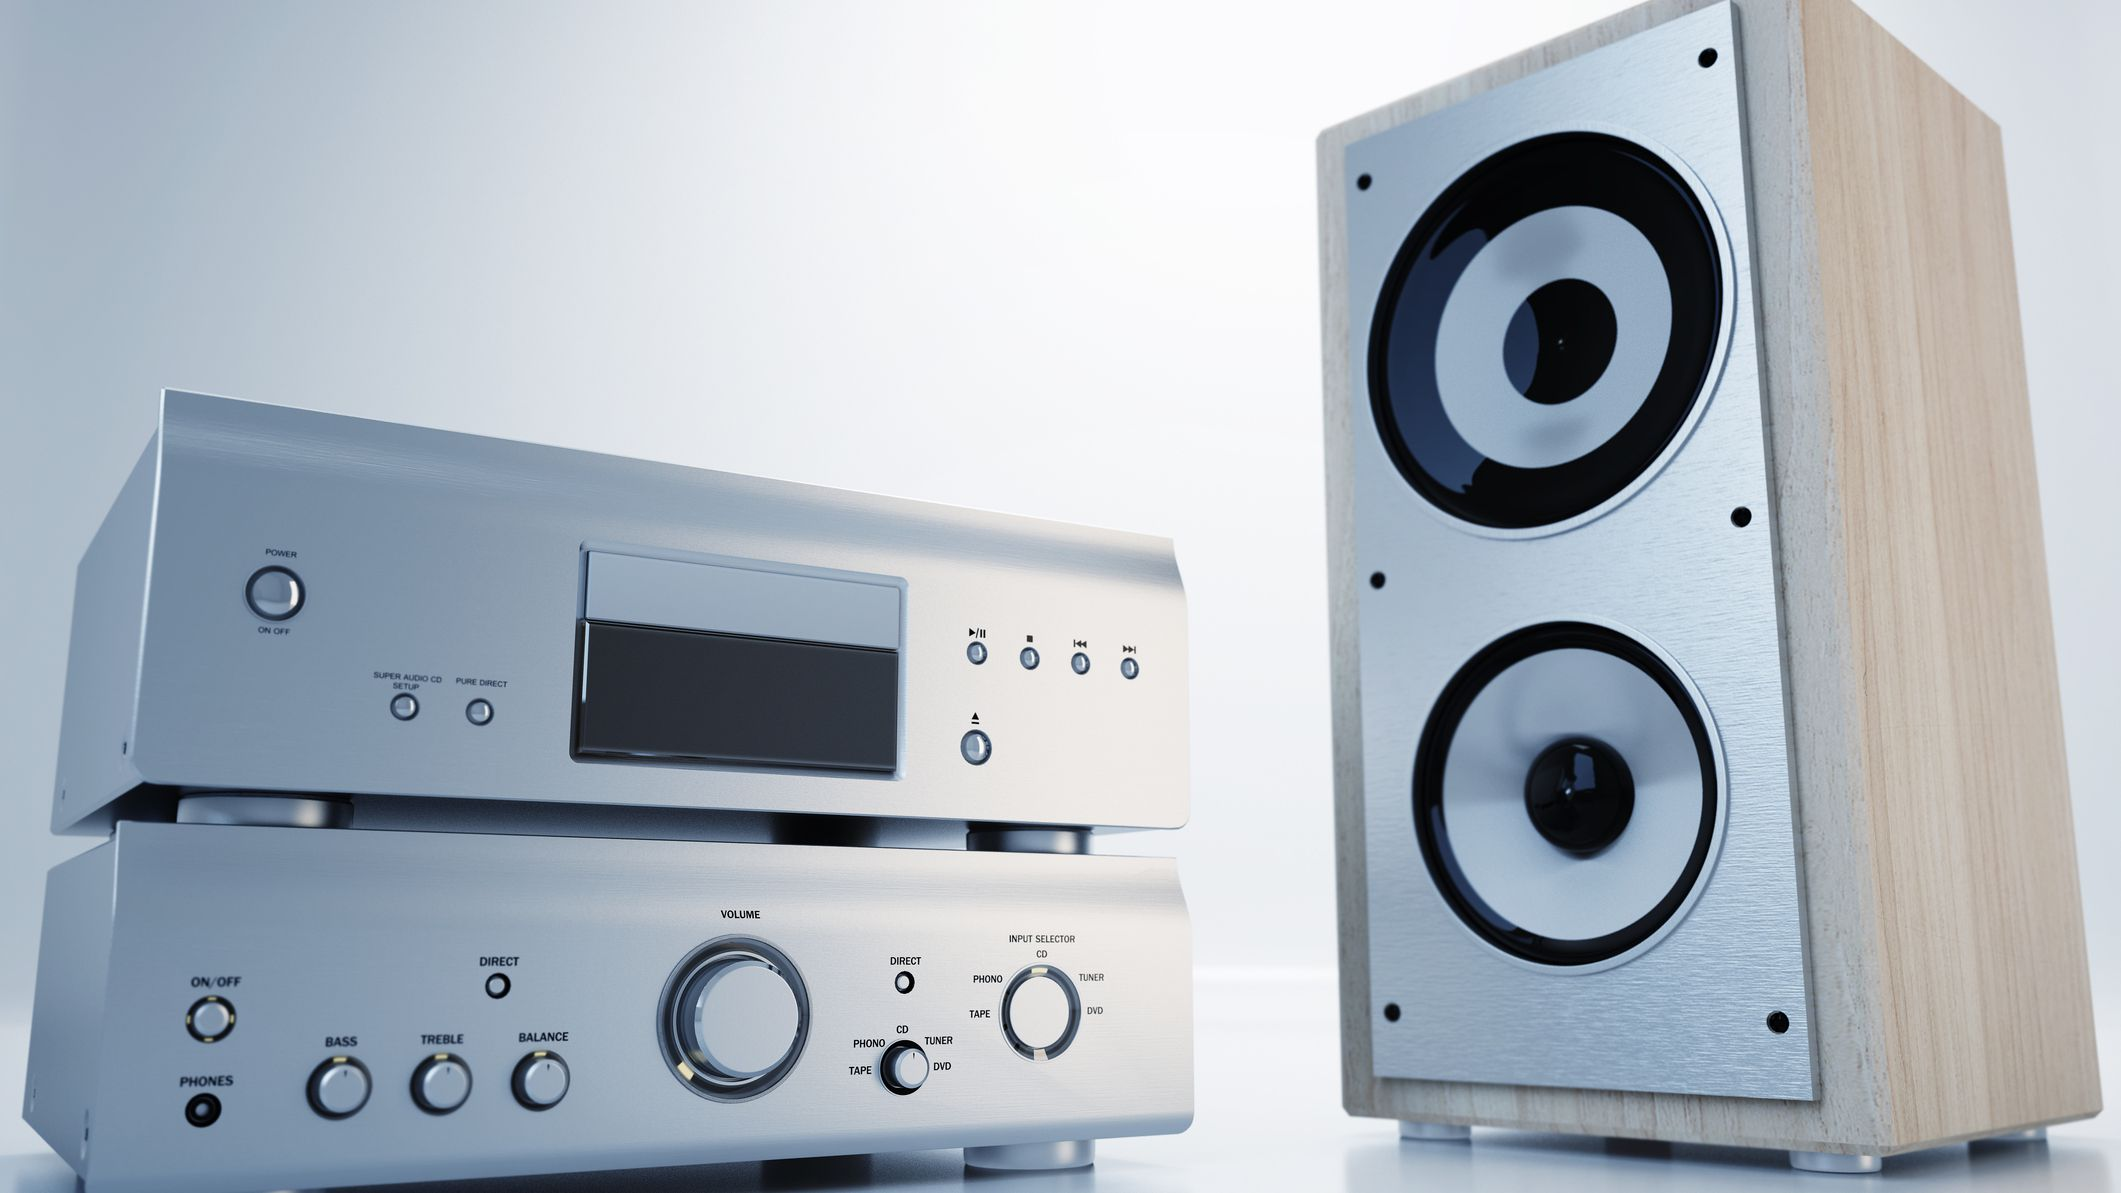 What to Do When the Receiver Suddenly Switches Off